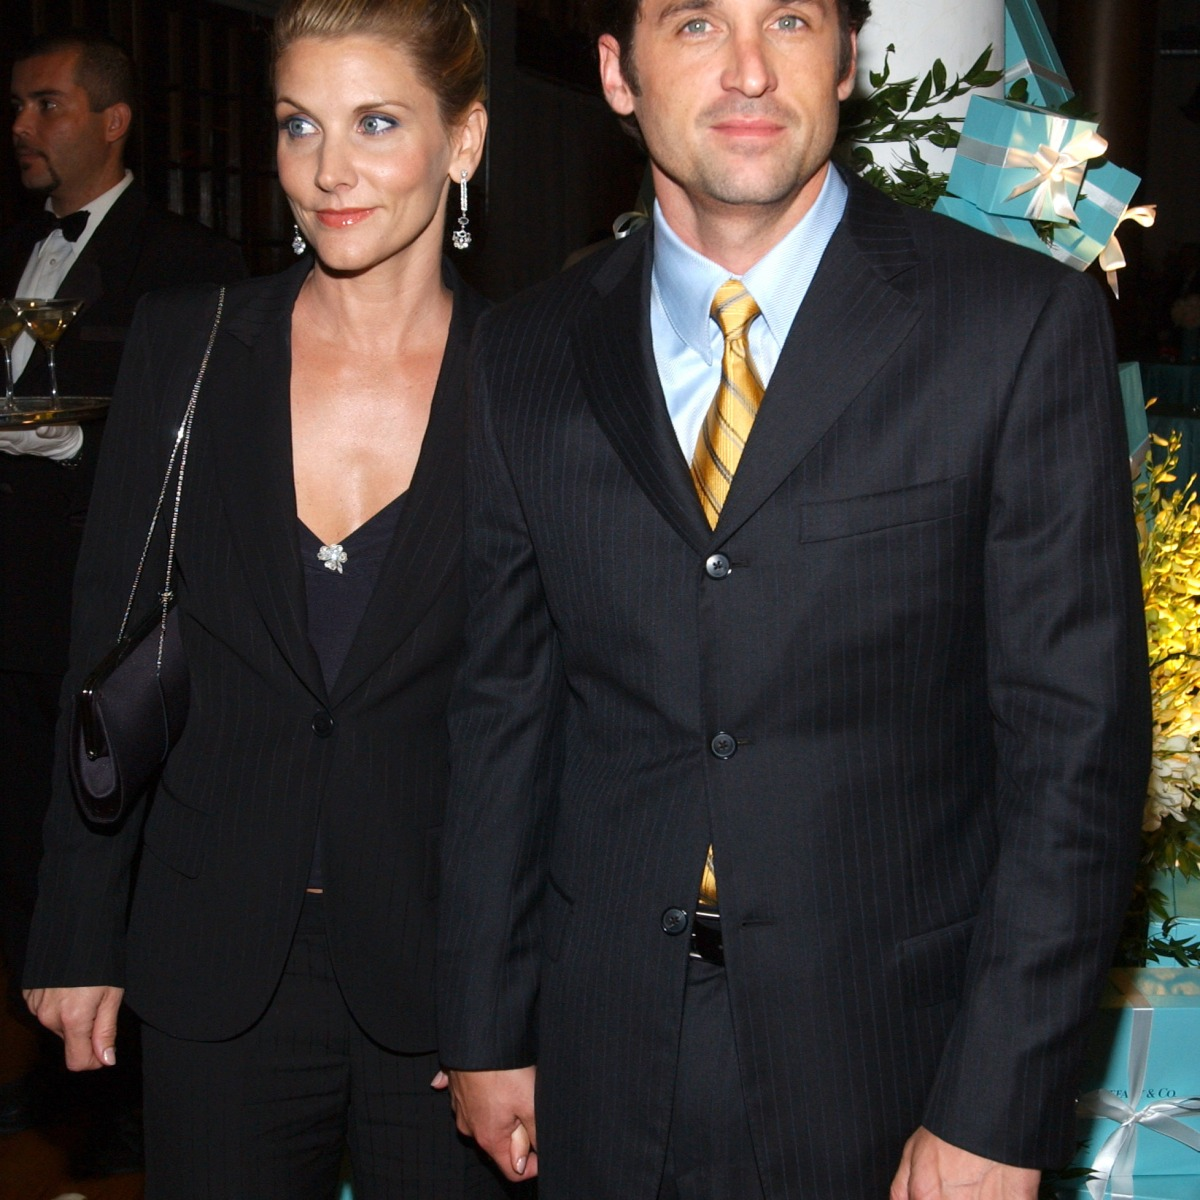 Patrick Dempsey And Wife Jillian Fink Celebrate 19th Wedding Anniversary